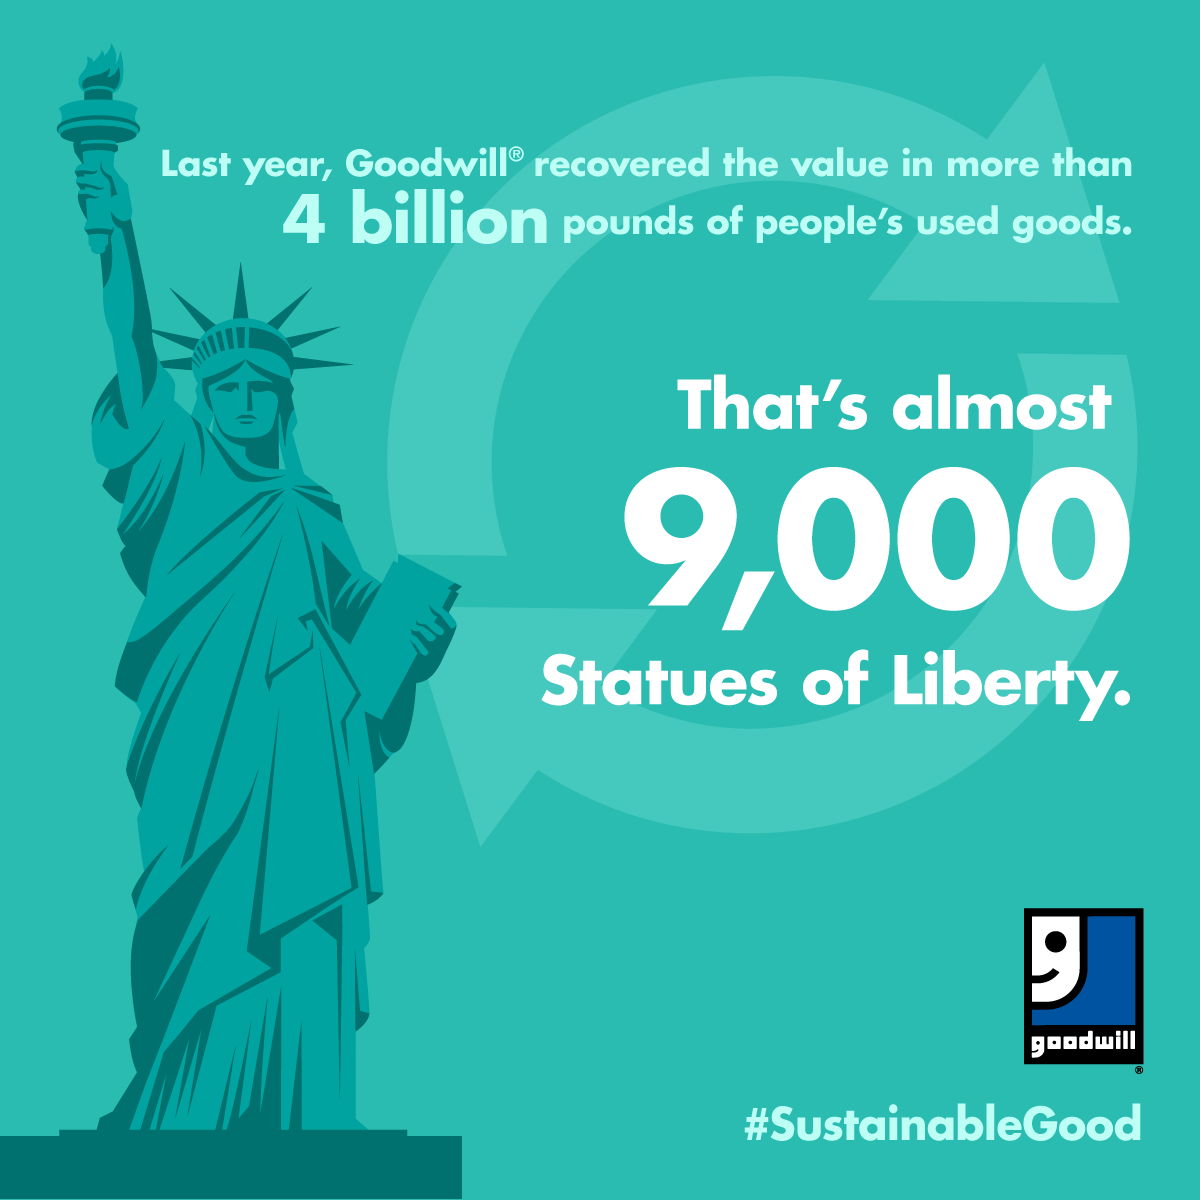 Last year, Goodwill recovered the value in more than 4 billion pounds of people's used goods. That's almost 9,000 Statues of Liberty.